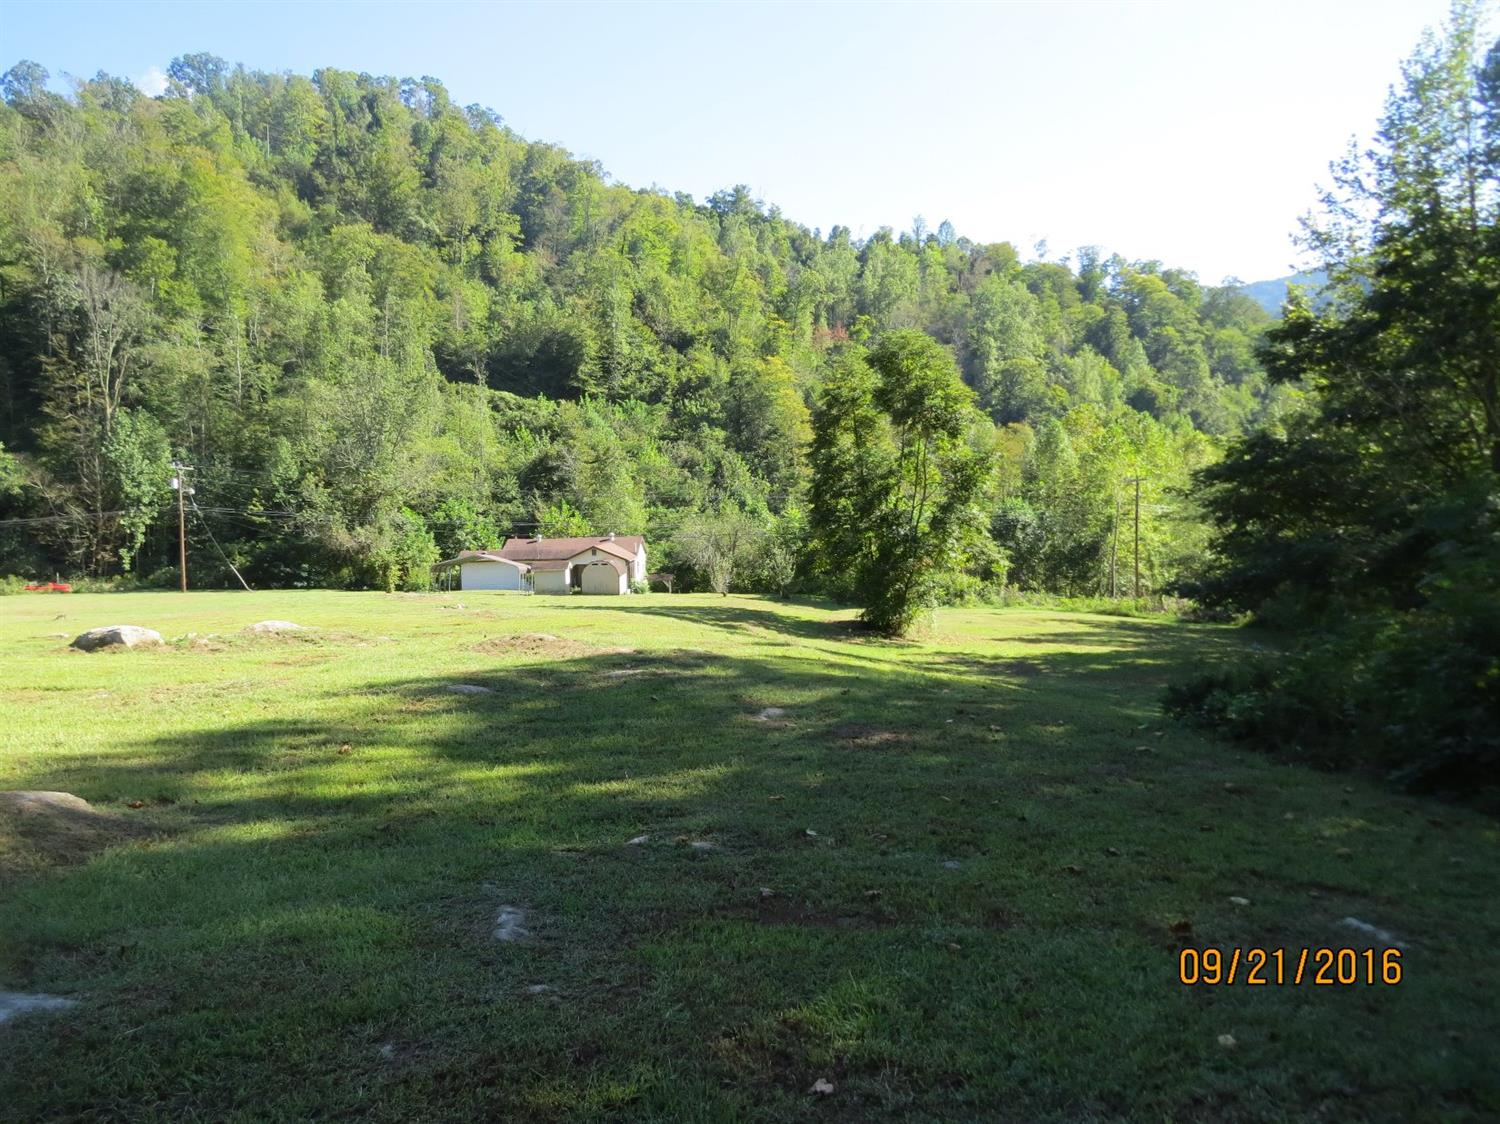 391 AGES CREEK RD, AGES BROOKSIDE, KY 40801